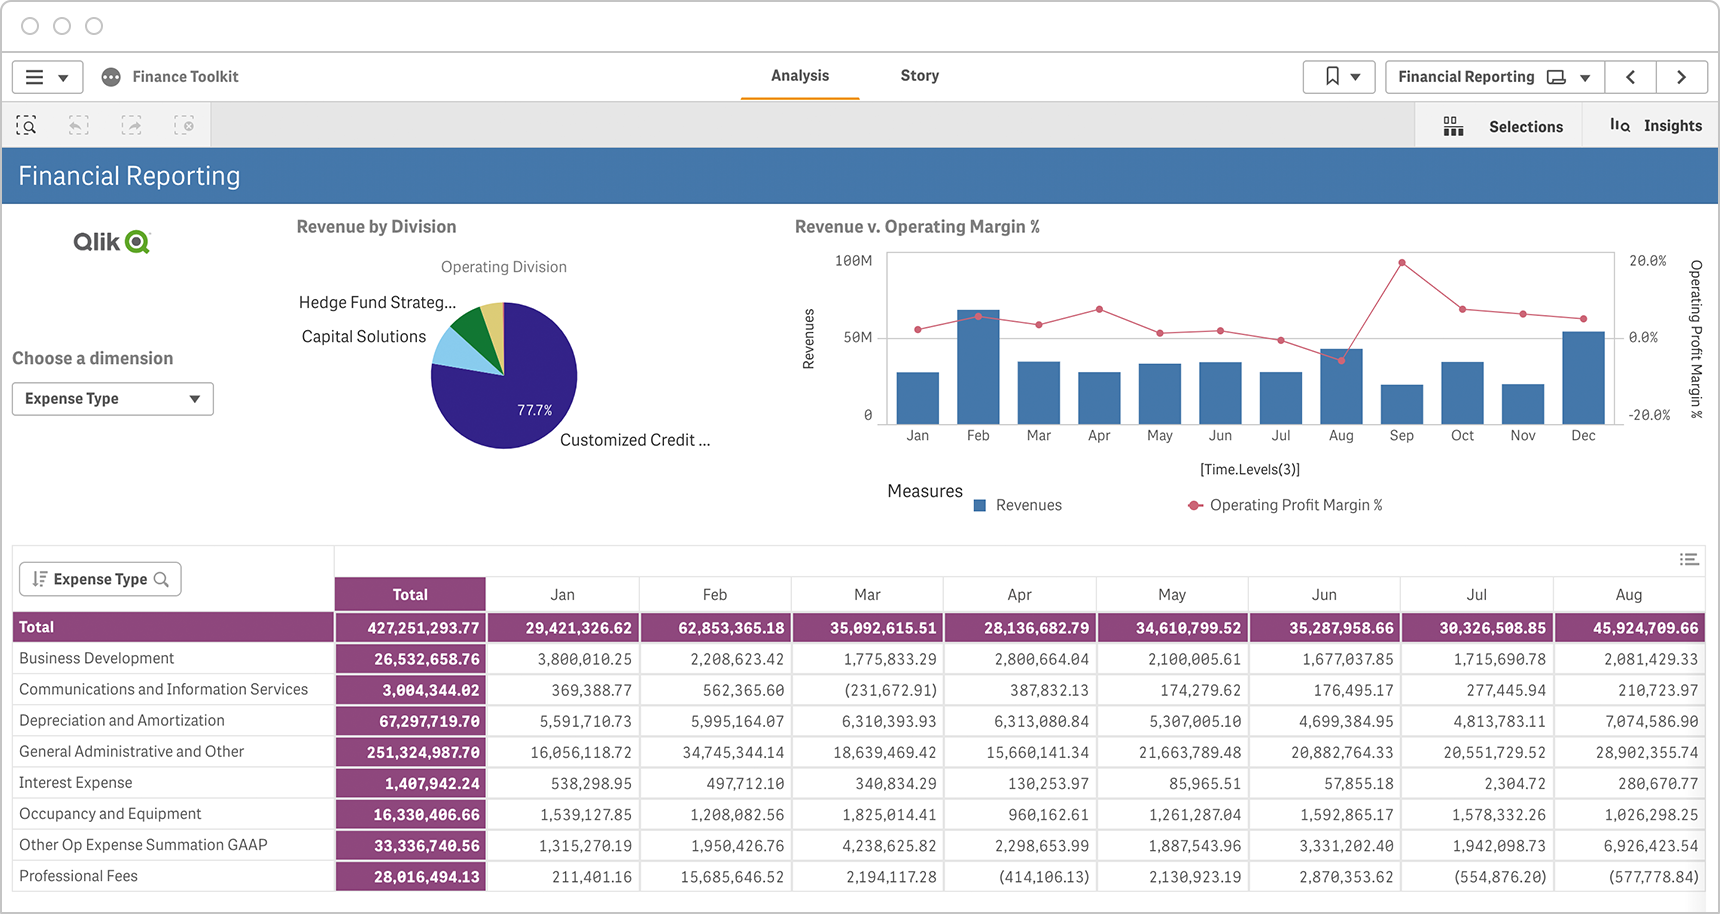 Executive Dashboards allow a CFO to drill into expense, cost center, and procurement data to discover the real cost of doing business, compare expenses by division, assess details of each cost center, or discover new ways to increase profitability.